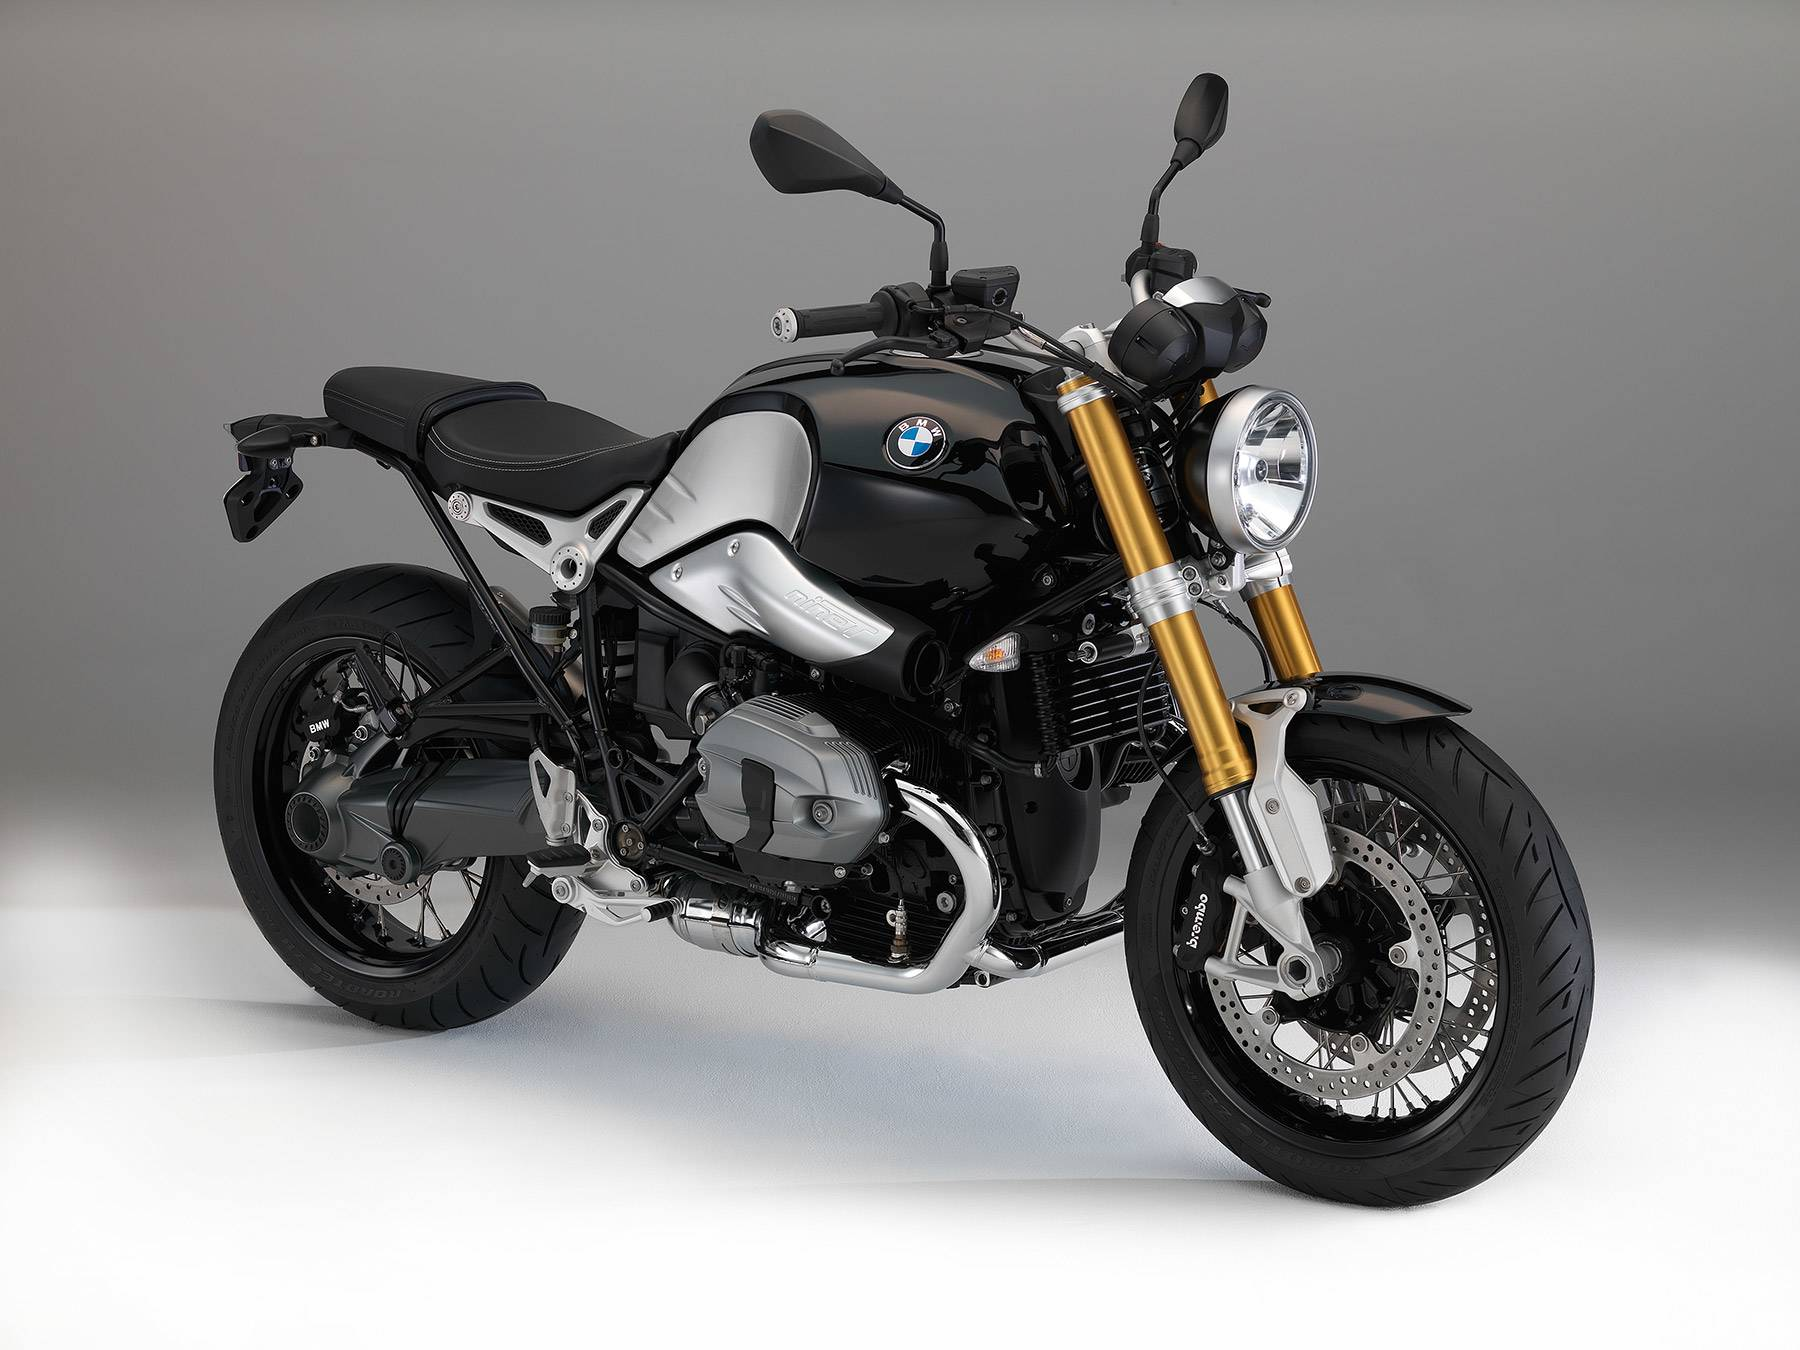 bmw r ninet precio fotos ficha t cnica y motos rivales. Black Bedroom Furniture Sets. Home Design Ideas